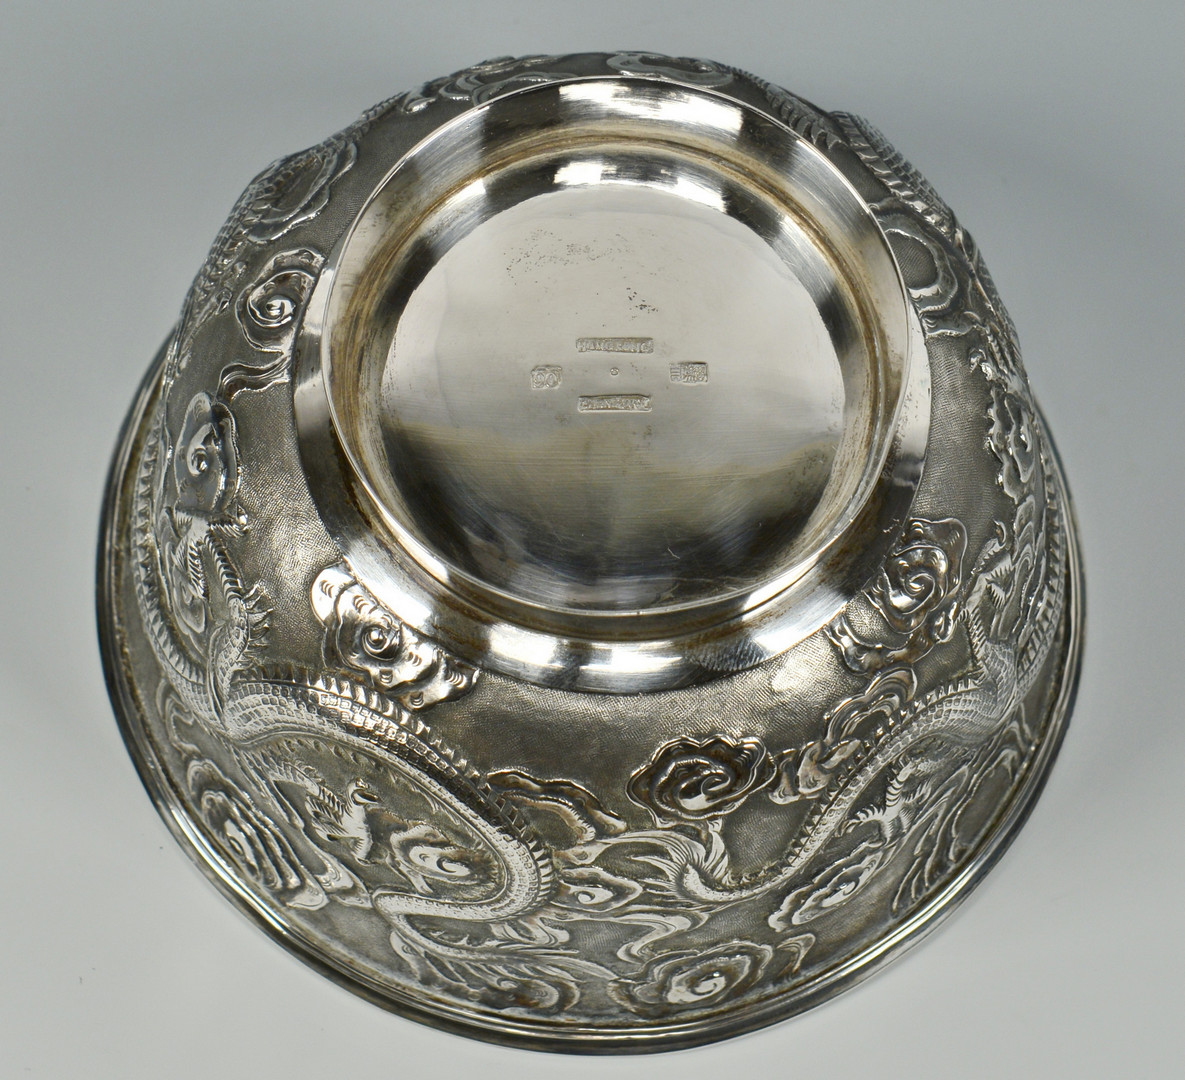 Lot 8: Chinese Export Silver Bowl w/ Dragon Design